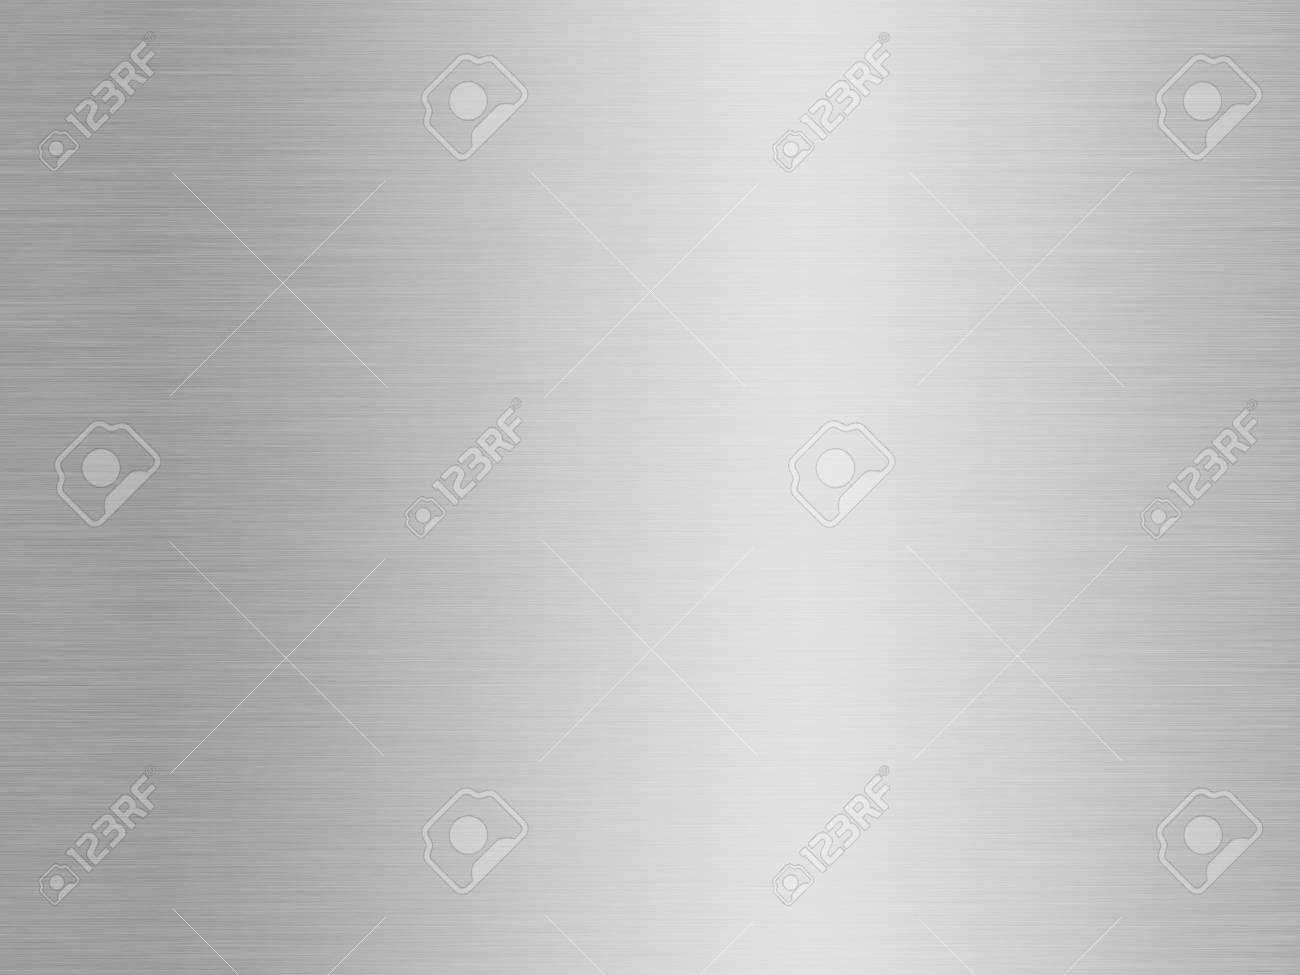 Stainless steel texture or metal texture background Banque d'images - 75076755